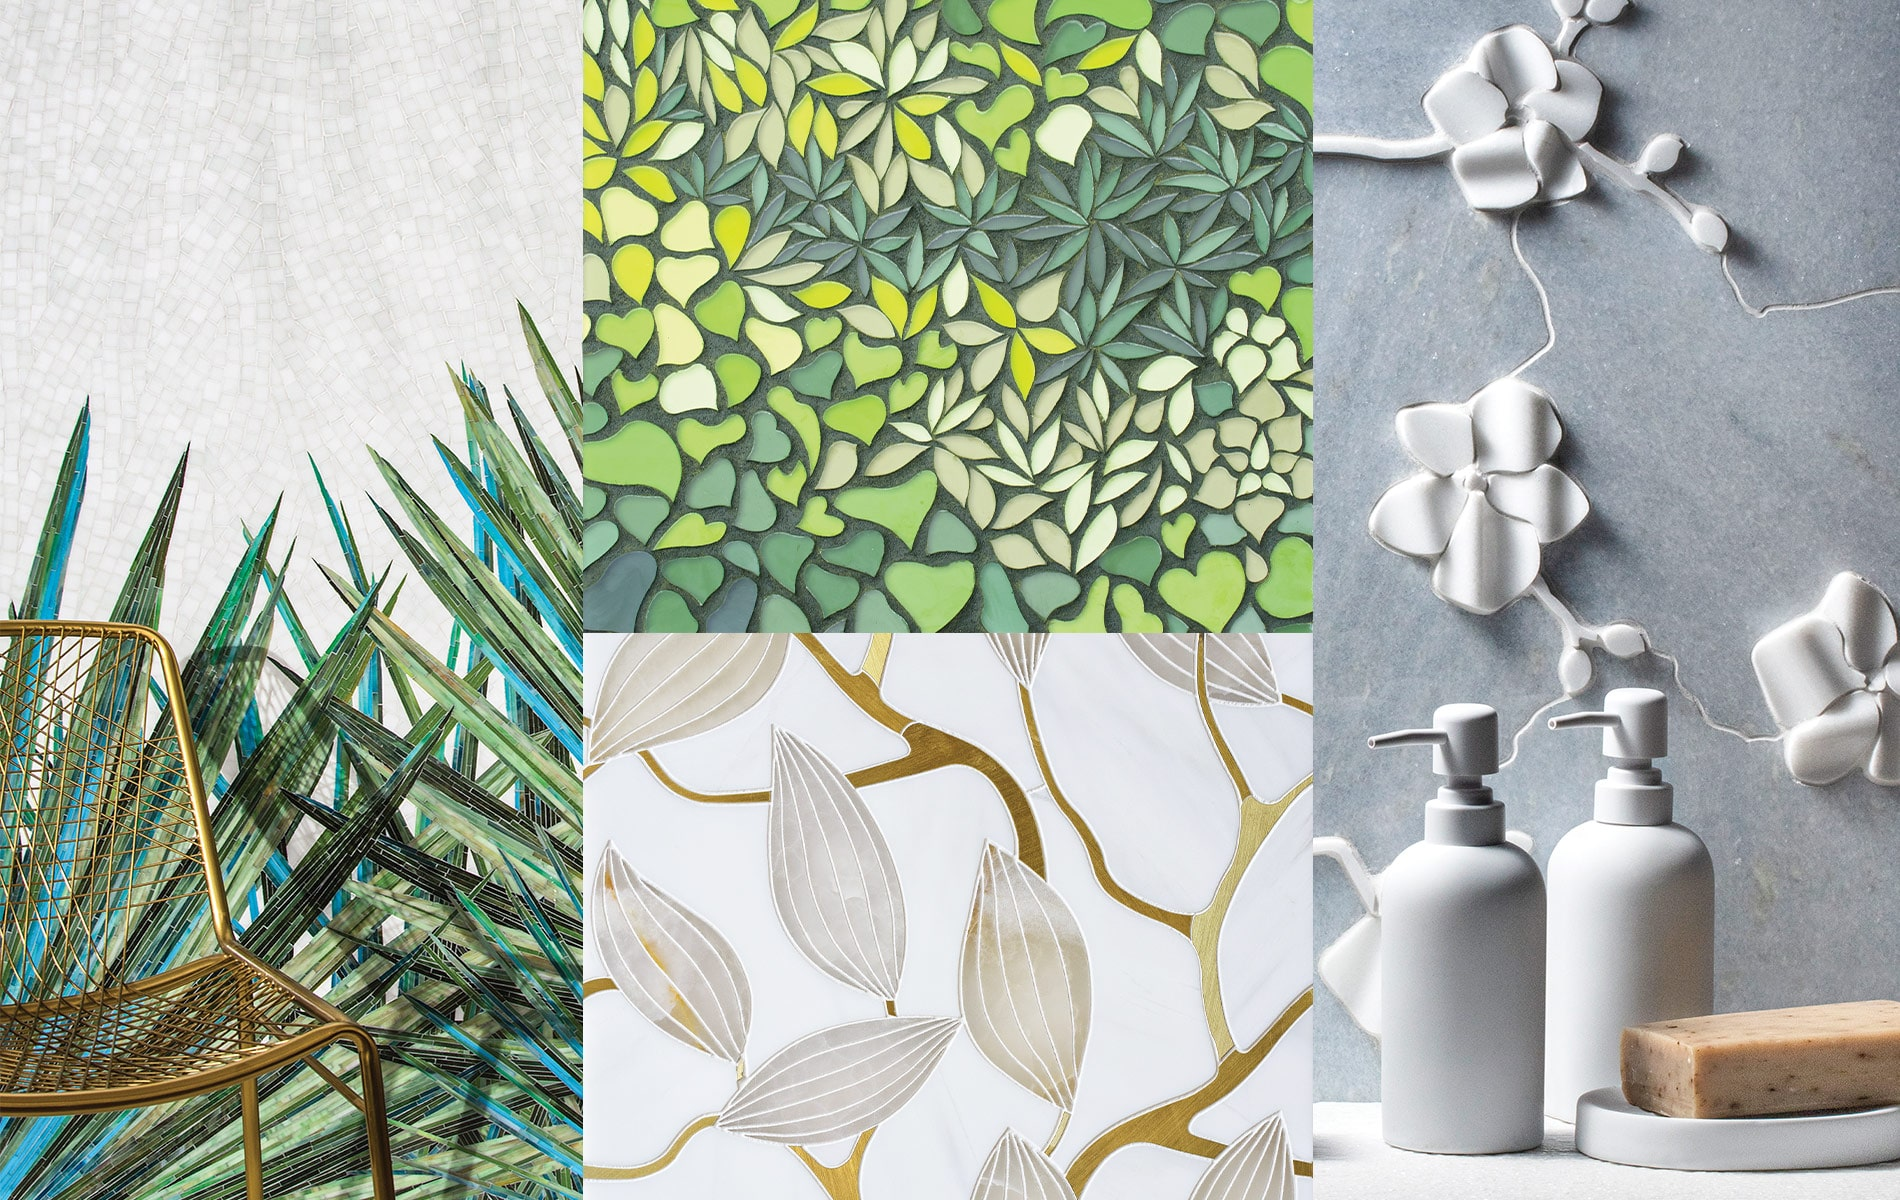 A combination of four images showcasing 4 different tiles offered at Q-Tile. The tiles all reflect nature with green hues or flower designs.